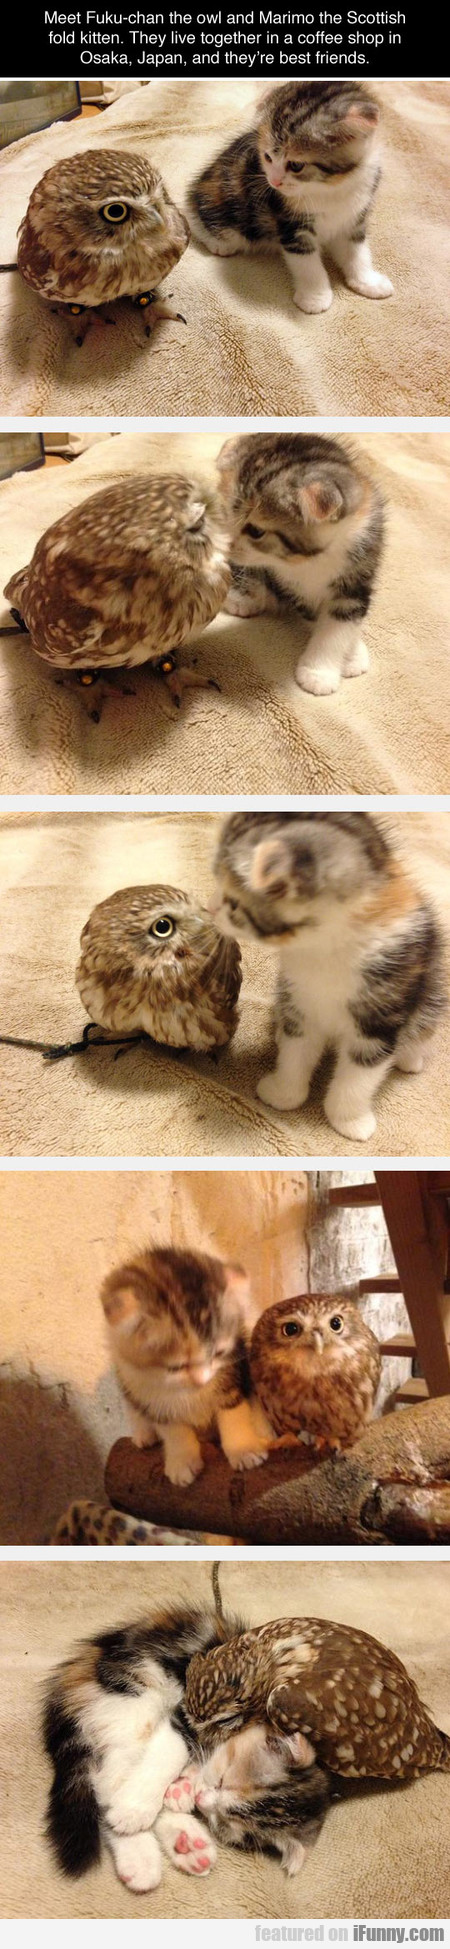 Meet Fuku-chan The Owl And Marimo The Kitten